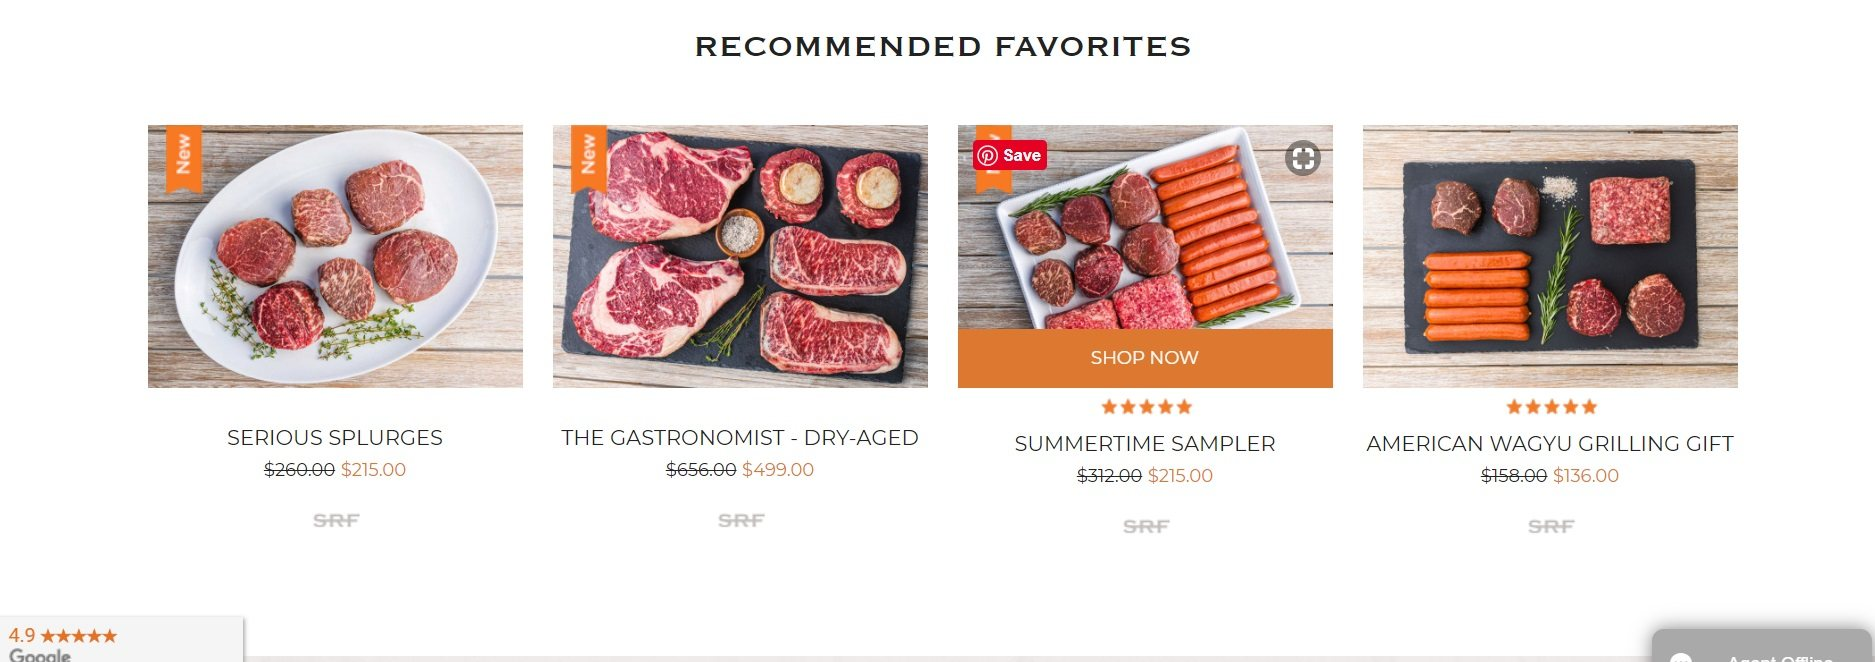 Snake River Farms - Recommended Favorites